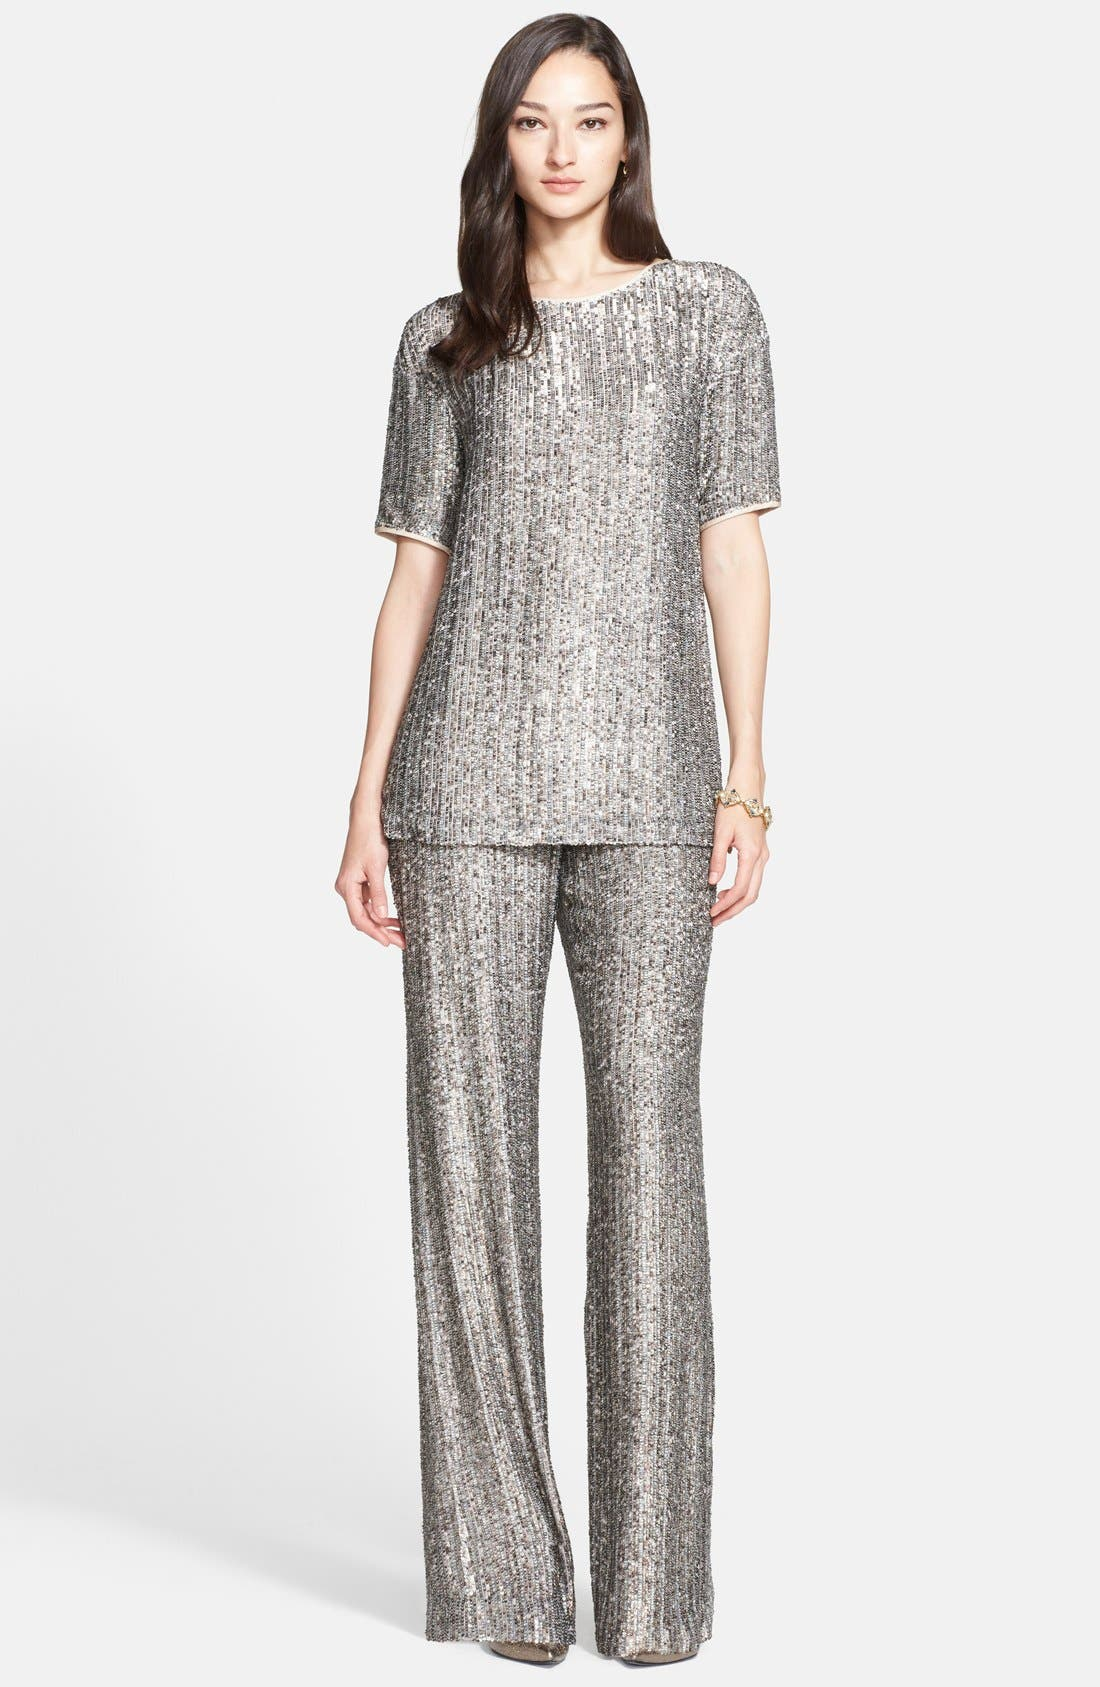 Alternate Image 1 Selected - St. John Collection Metallic Sequin Stripe Silk Top